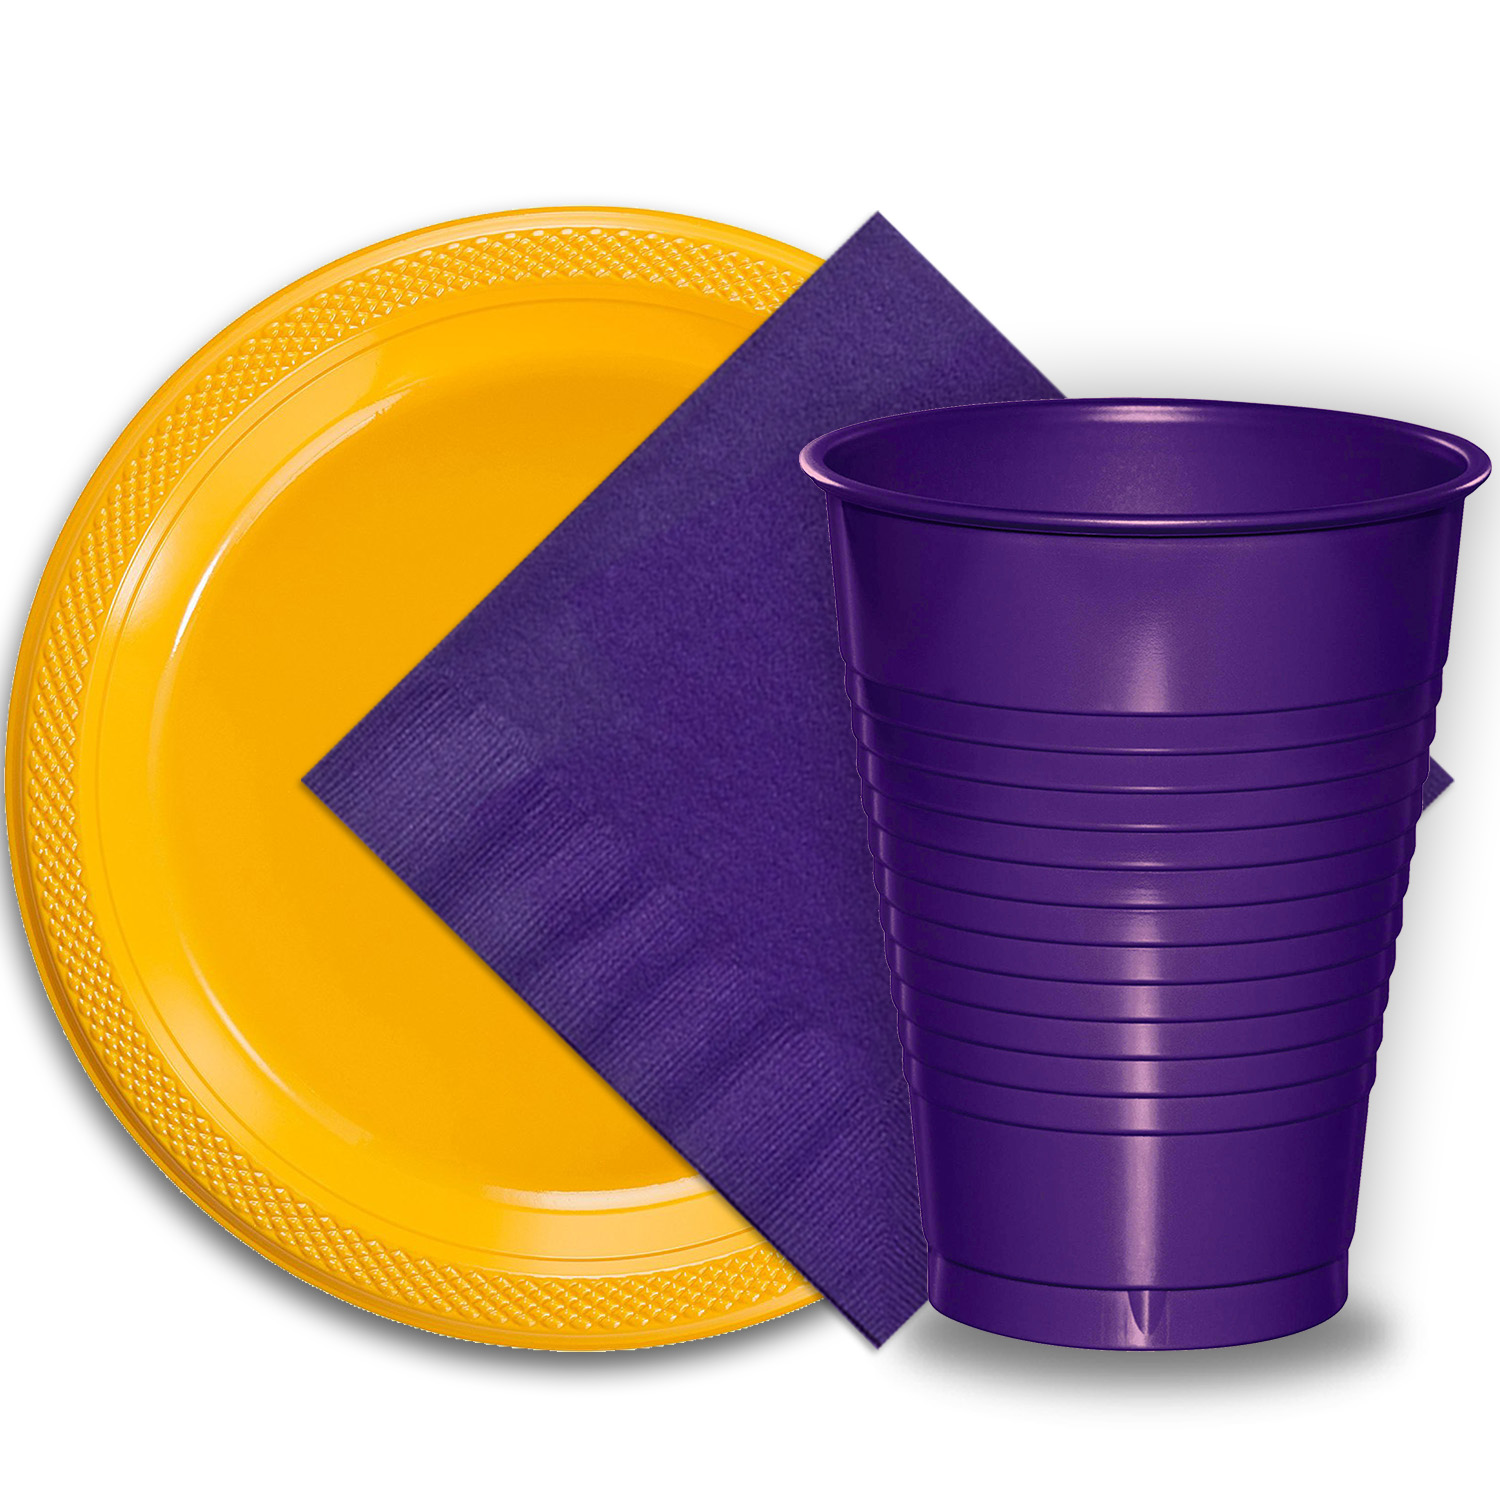 """50 Yellow Plastic Plates (9""""), 50 Purple Plastic Cups (12 oz.), and 50 Purple Paper Napkins, Dazzelling Colored Disposable Party Supplies Tableware Set for Fifty Guests."""